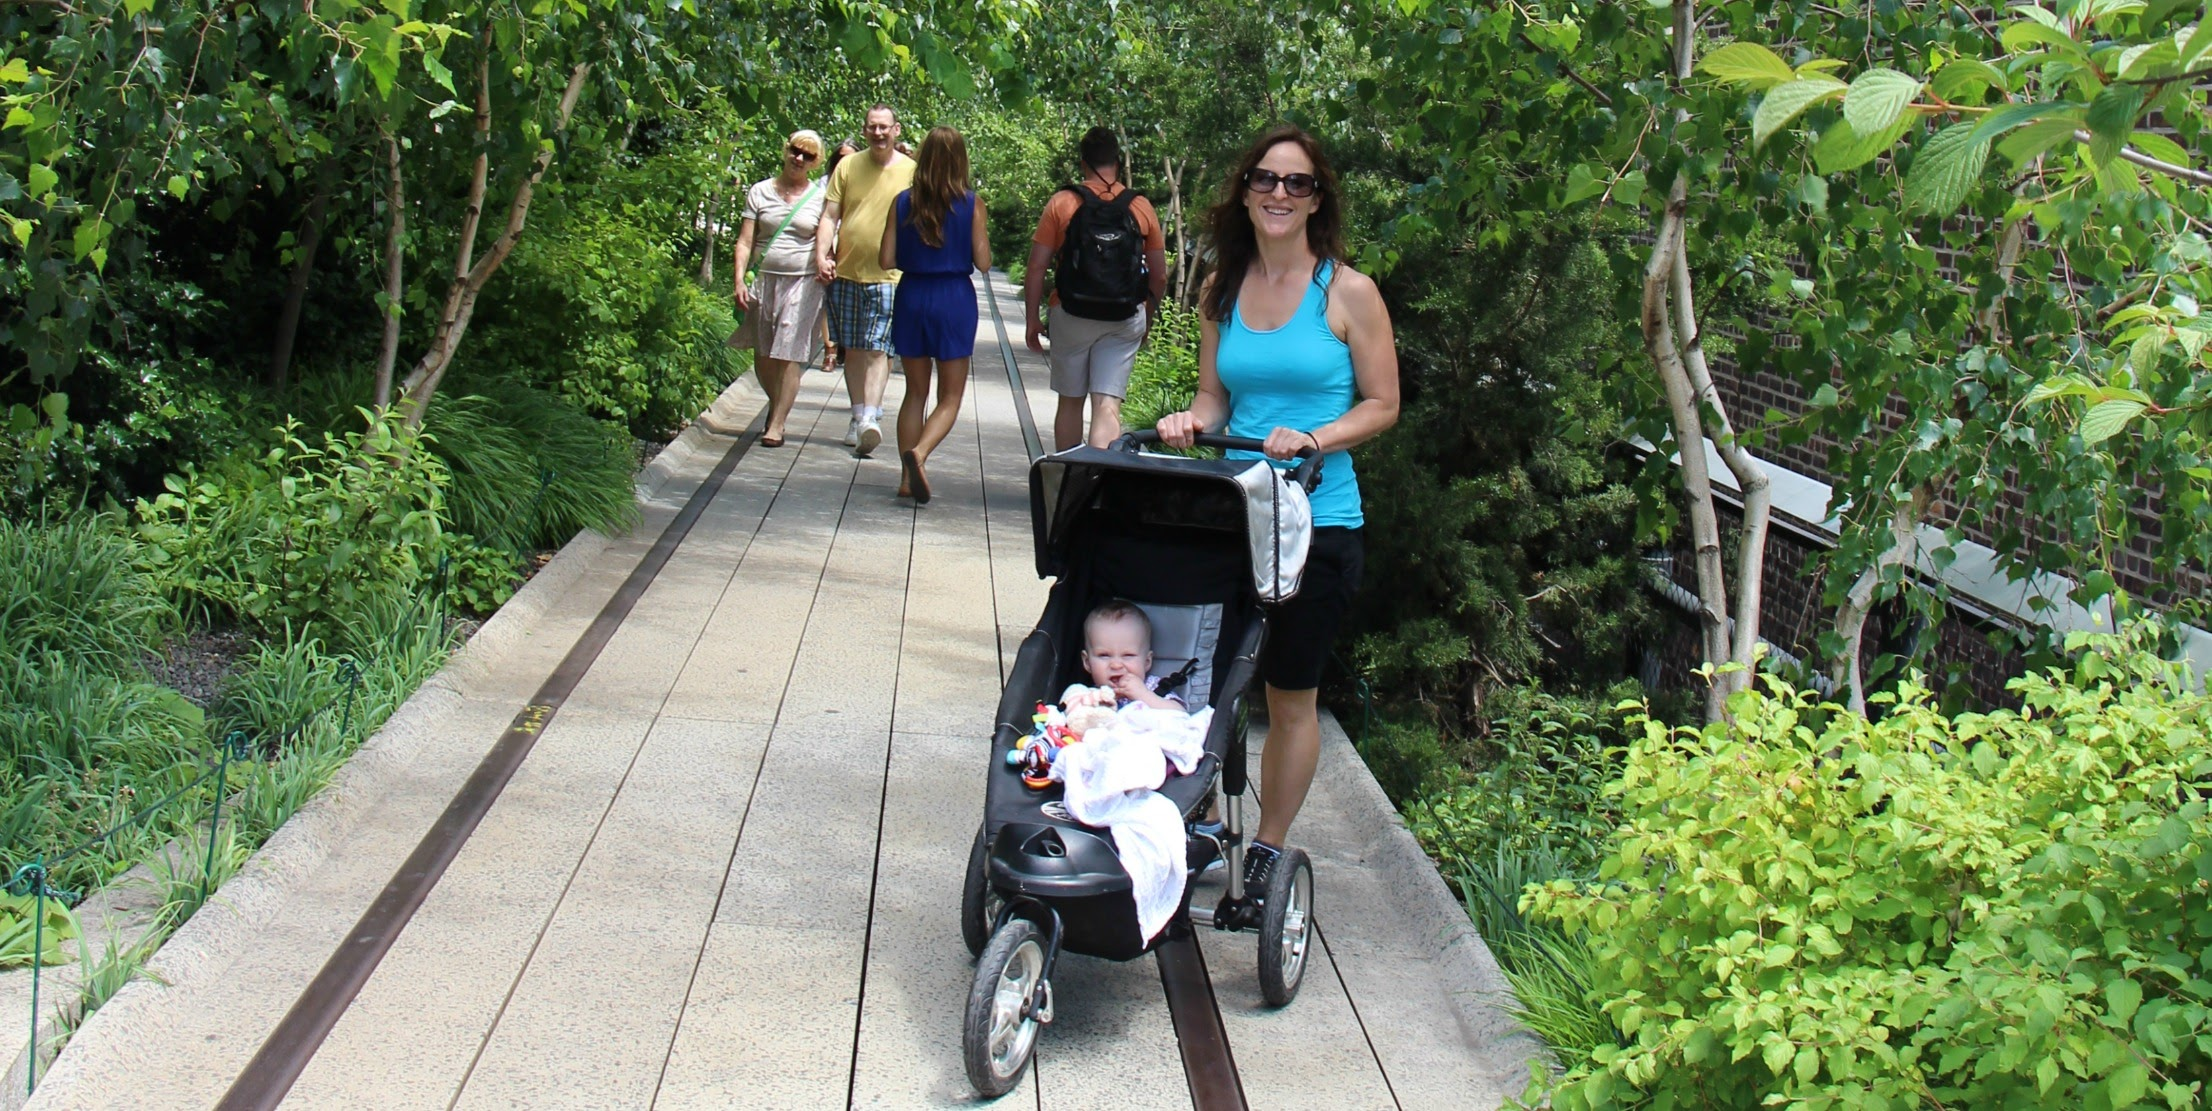 Walking the High Line with a baby